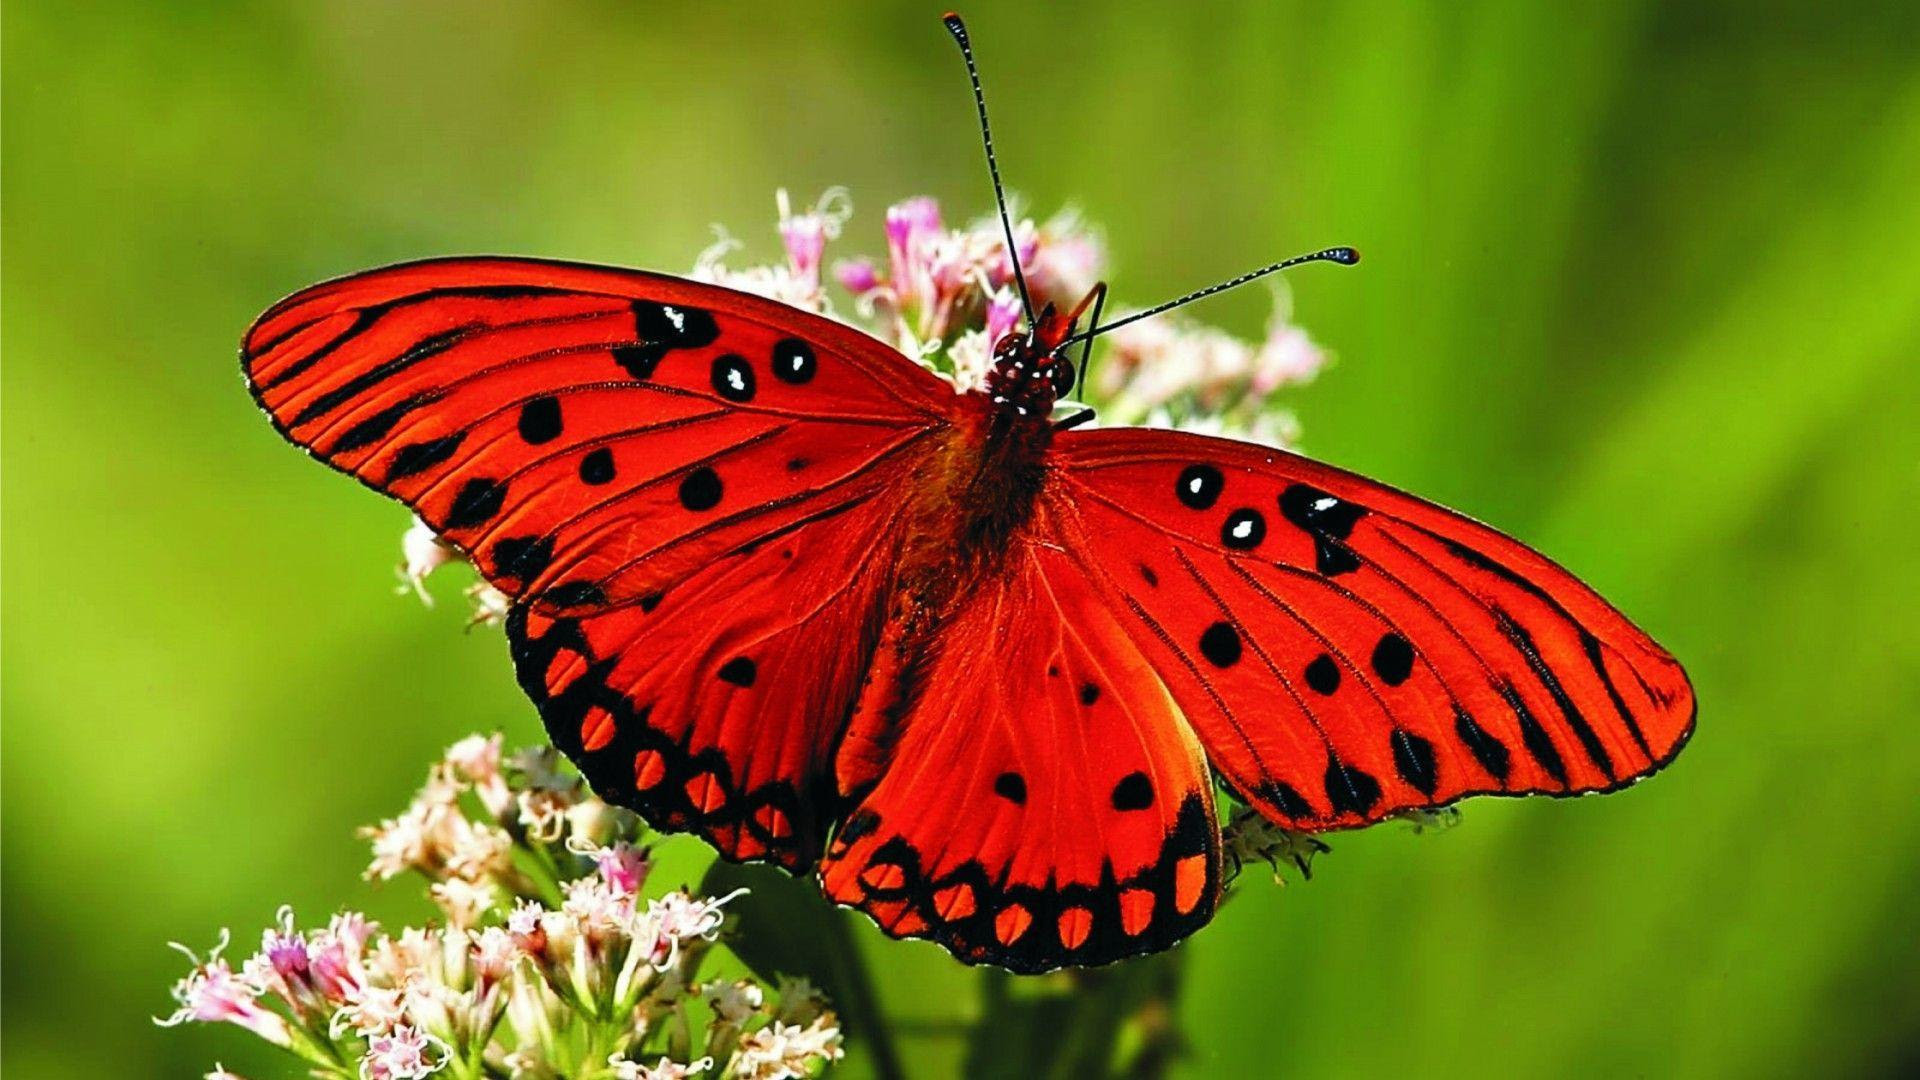 HD Butterfly Wallpapers - Wallpaper Cave